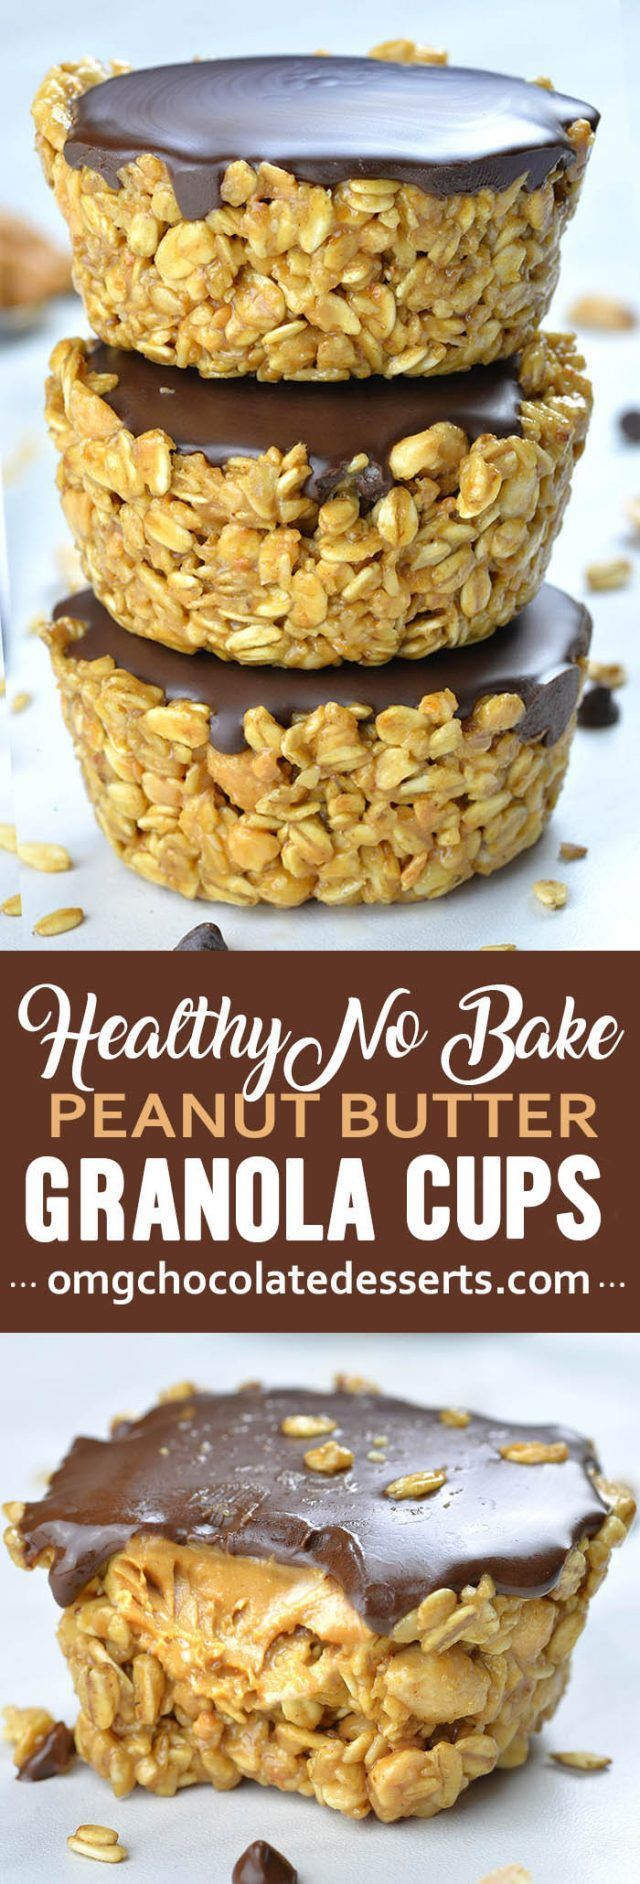 No bake peanut butter cereal cups